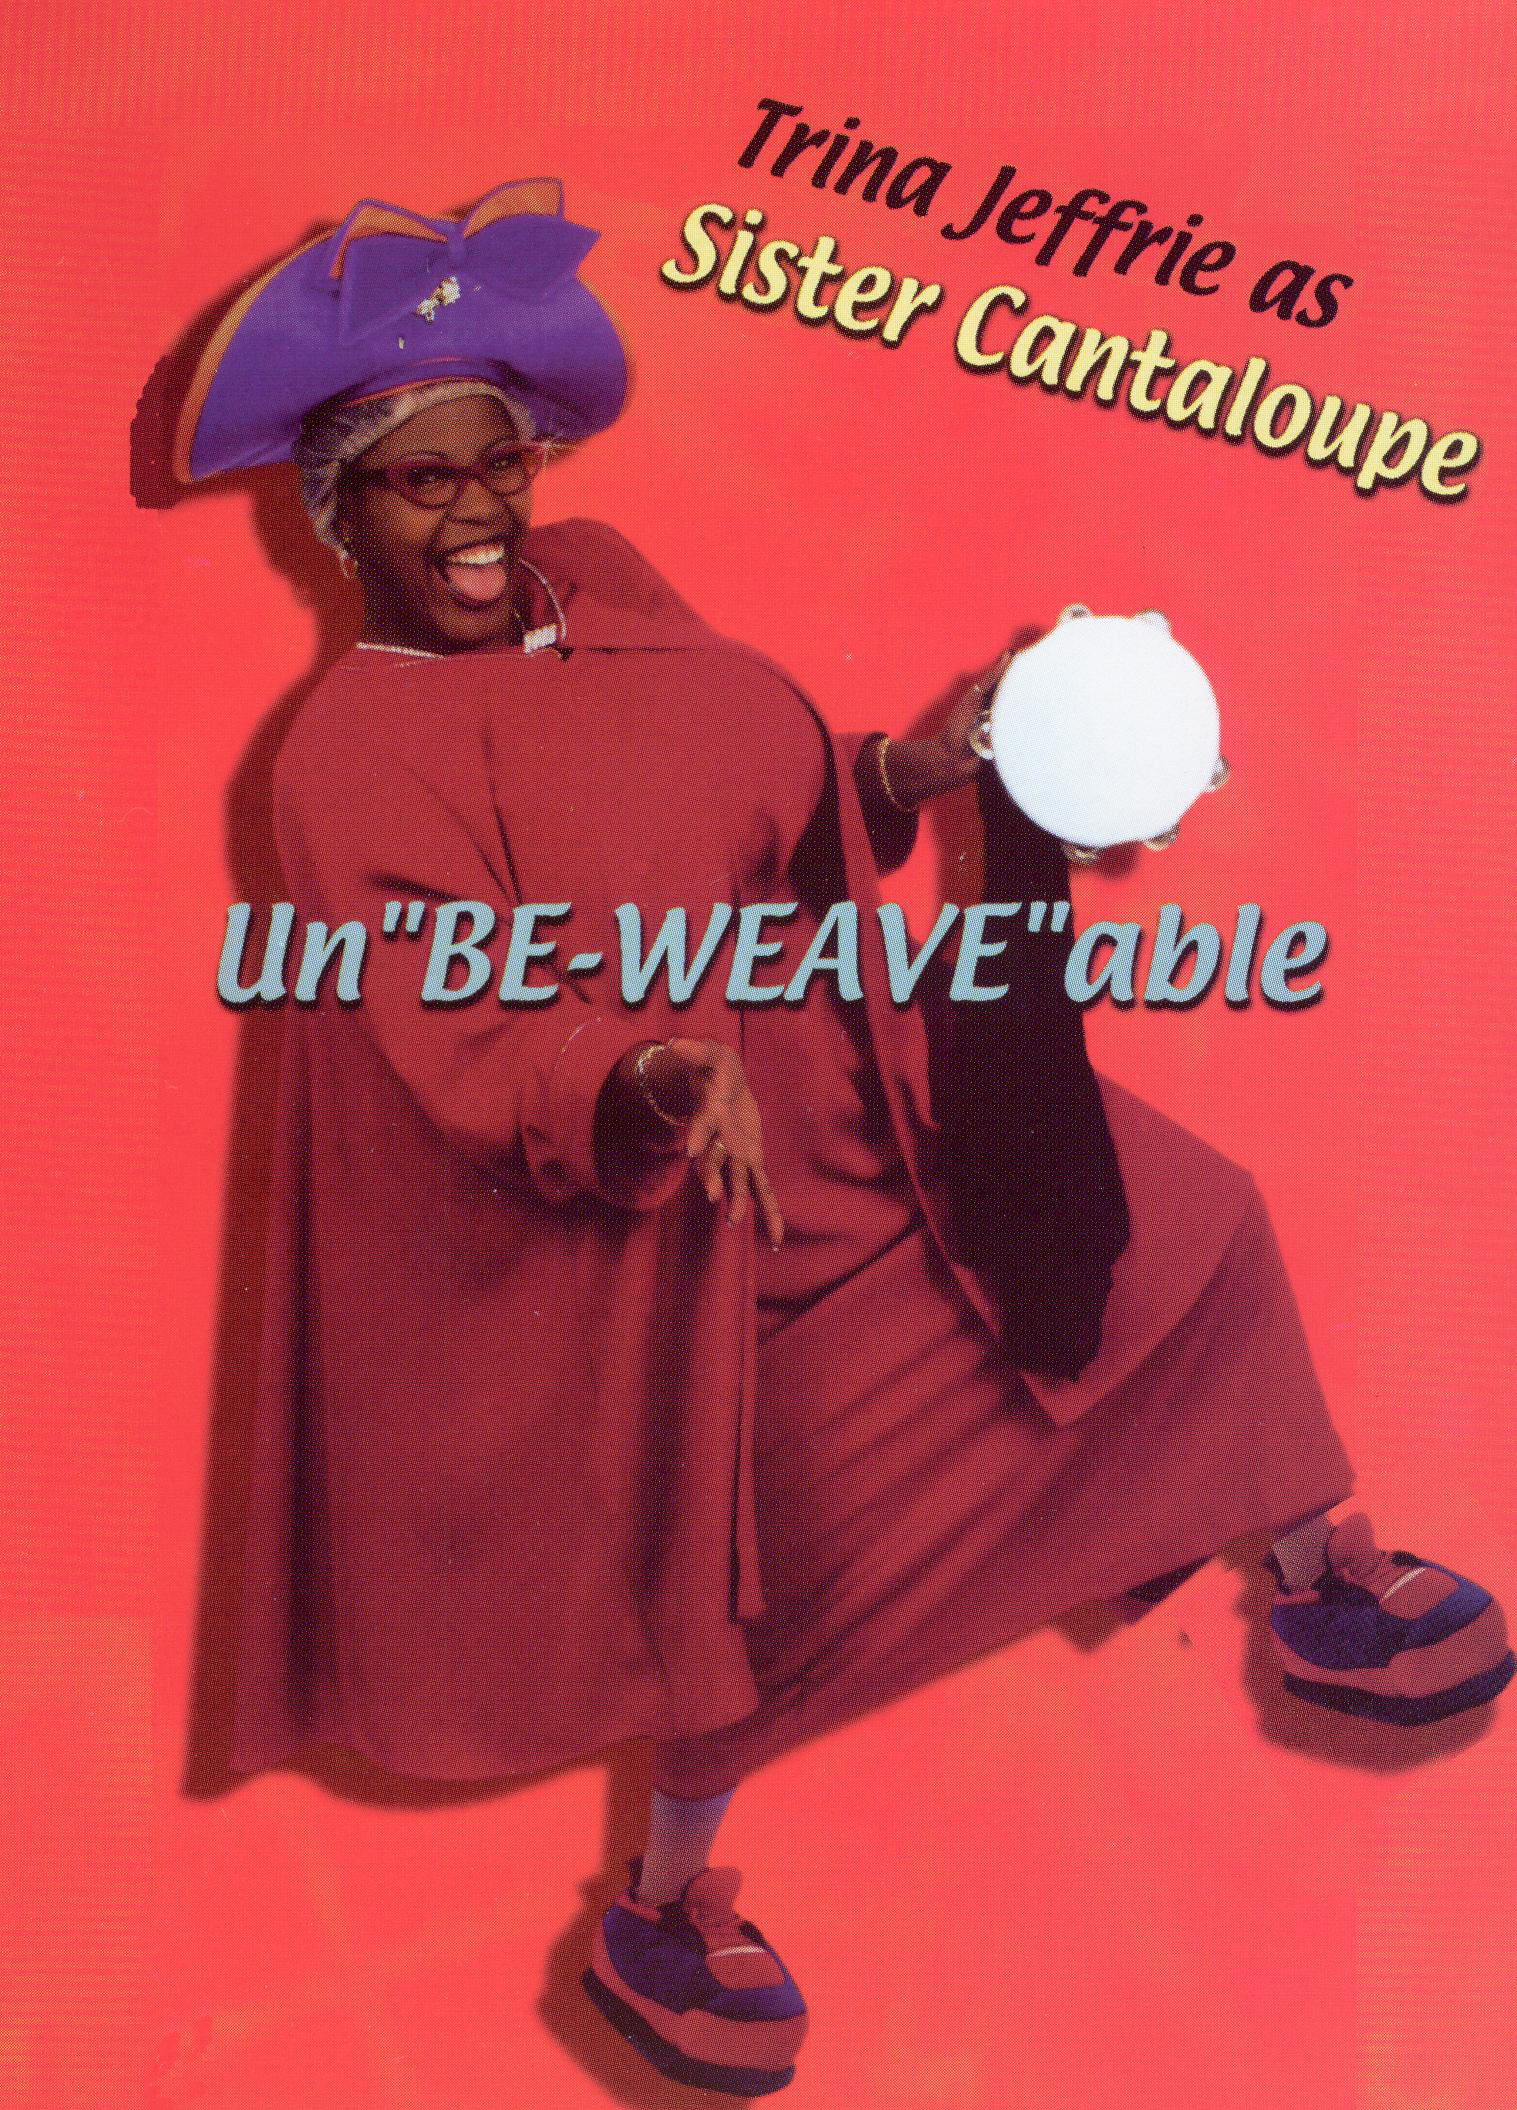 Sister Cantaloupe: Unbe-Weave-Able